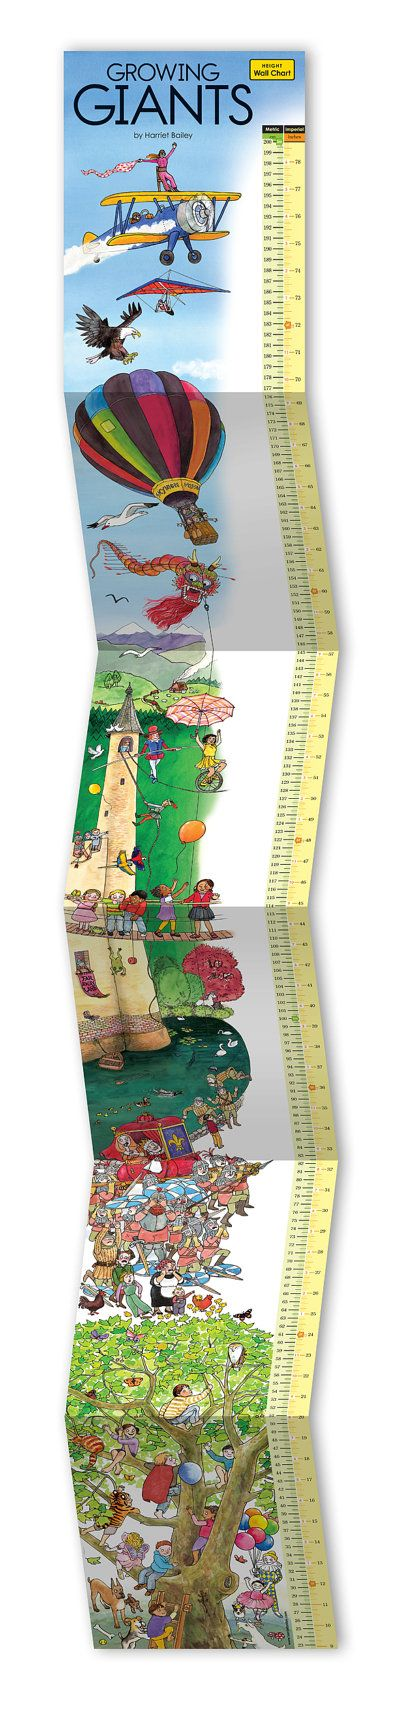 Record your growing giants against an imaginative backdrop of time and place. From the smallest to the tallest – where do you fit in? In this far away land where growing giants visit to be measured up, there's lots happening to generate questions, spark the imagination and create new stories! The children are brave and fearless, the grown-ups...not so much! This height chart with metric and imperial measurements can accommodate the whole family. Measures 22.5 cm to 2 meters (8.85 inches to…